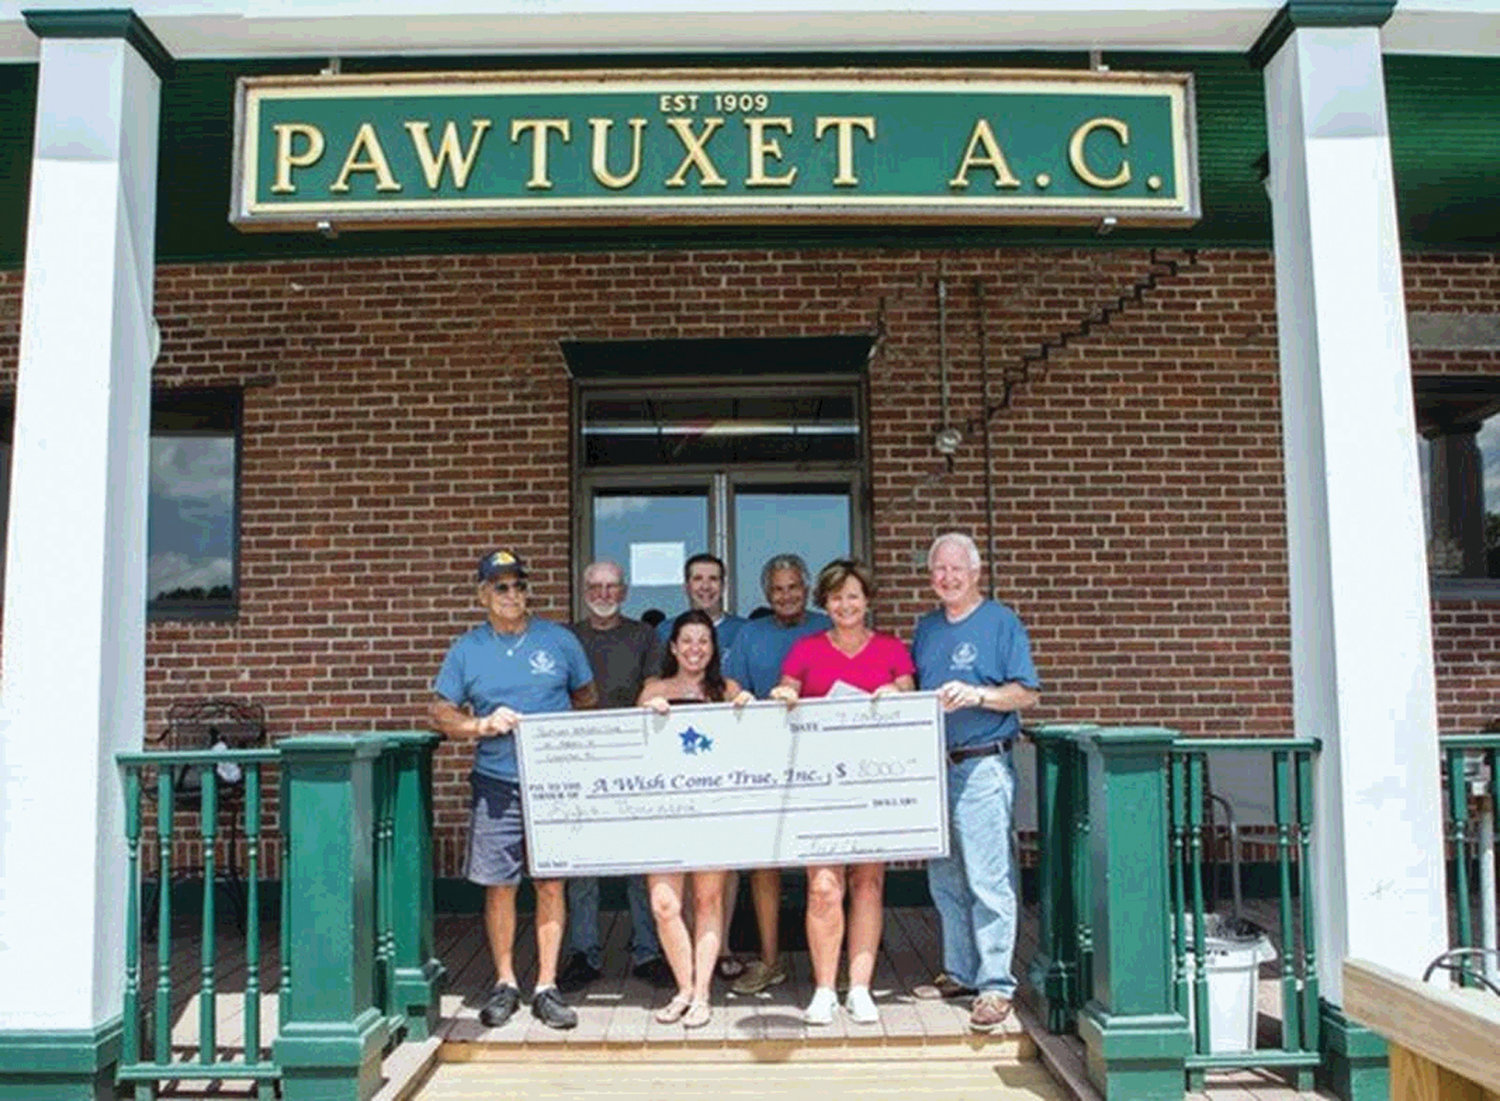 MAKING A DIFFERENCE: Pawtuxet Athletic Club Tournament Committee members and charity recipients gather during the June 2 fishing tournament finale event. Pictured are, back row from left, Skip Pettis, Jimmy Gosselin and Fred Chiarini; and front row from left, Bob Souza, Amy Conlan and Mary-Kate O'Leary from A Wish Come True and Bill Shaw.